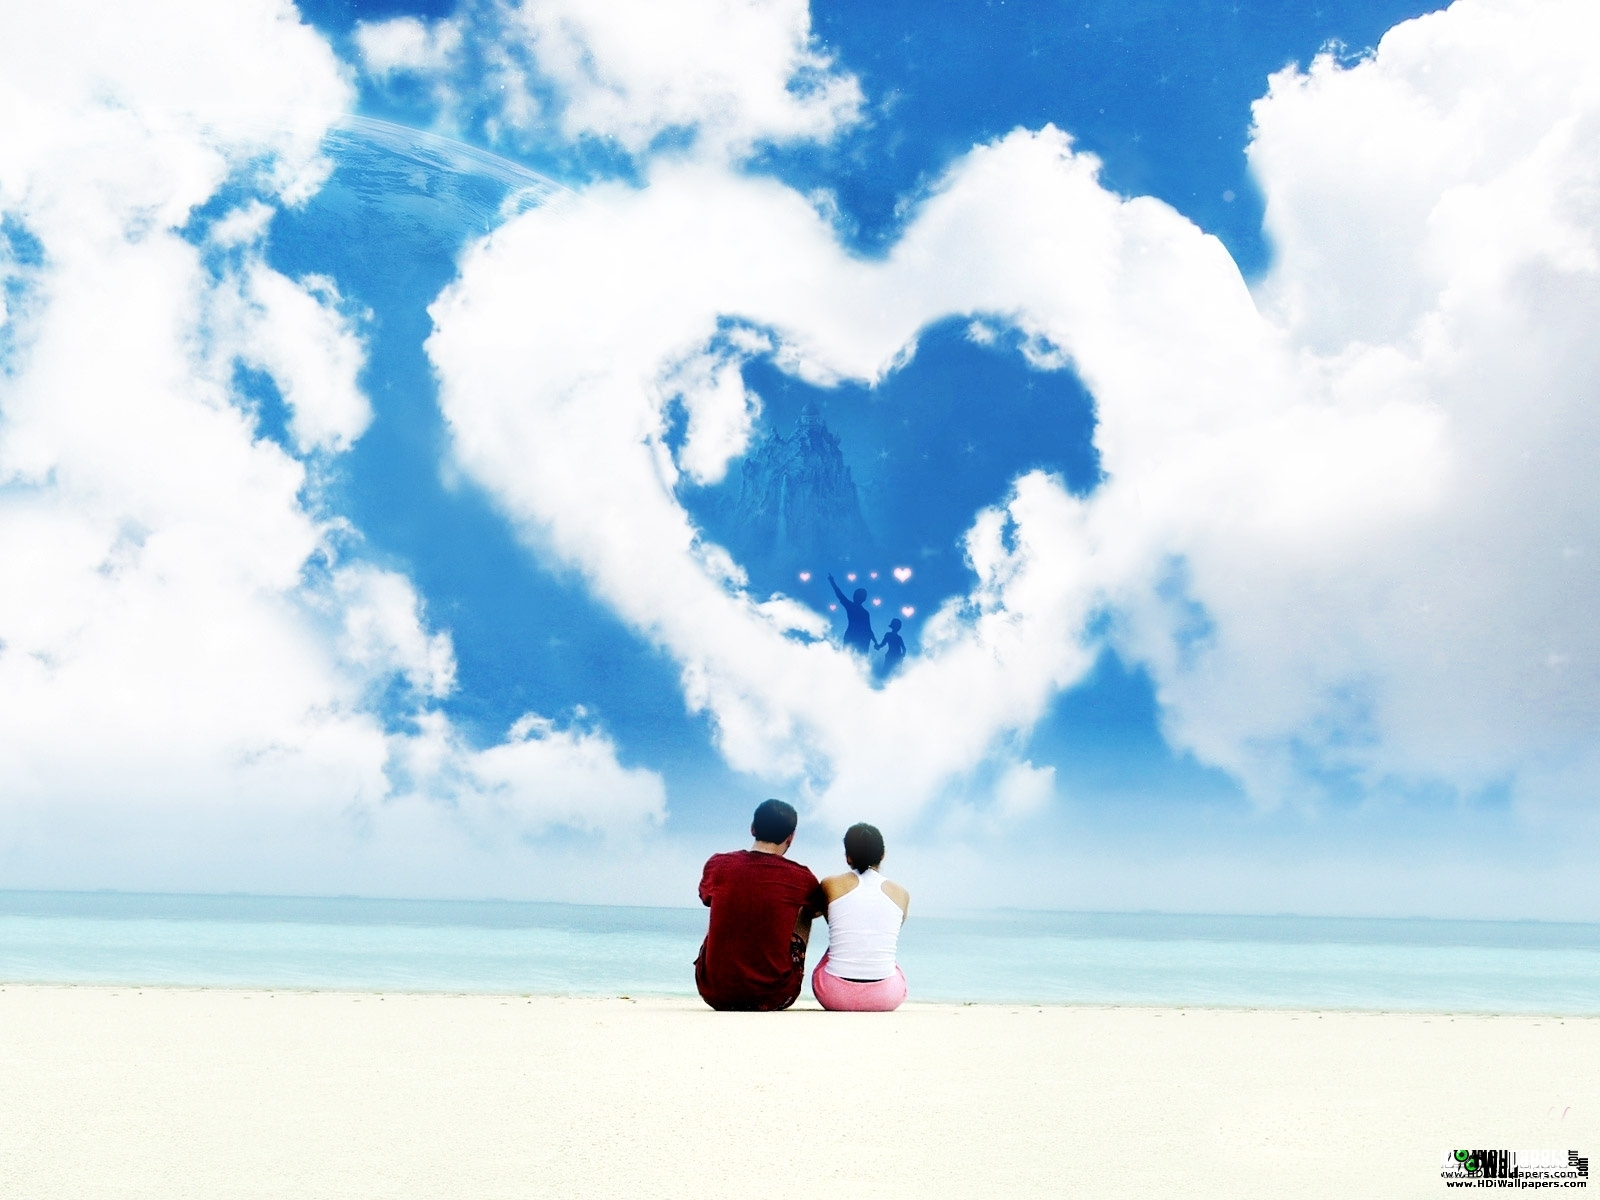 Love Wallpapers With Messages Hd : Romantic Love Hd Images Free Download 8 cool Hd Wallpaper ...